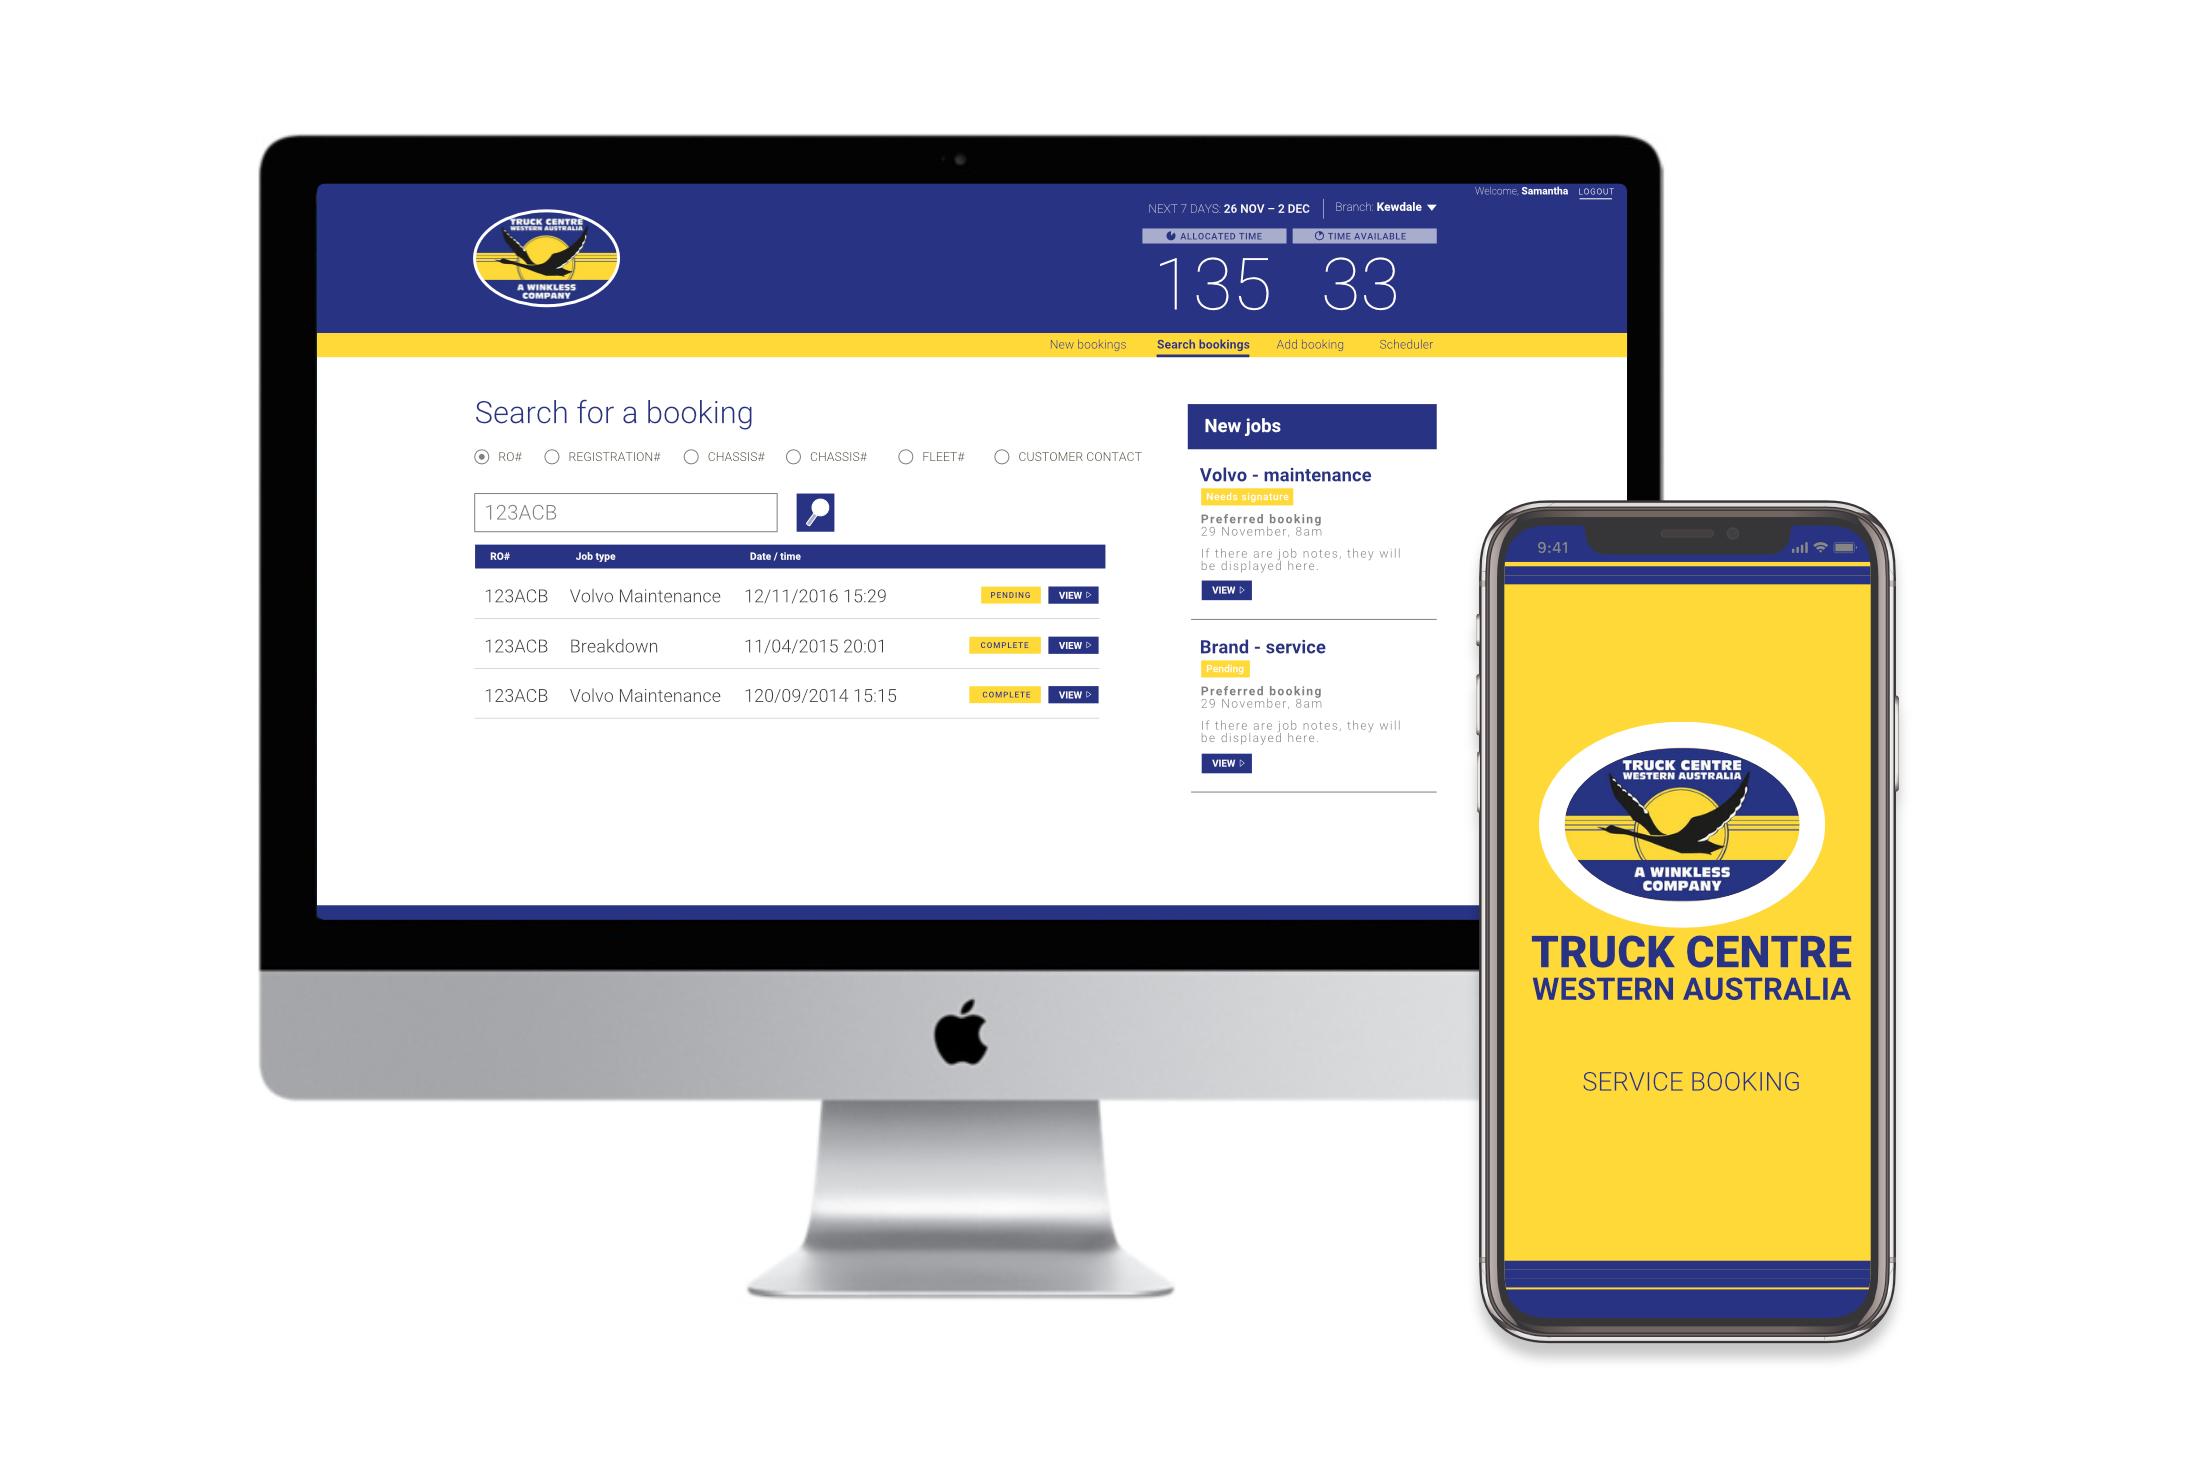 Truck Centre scheduling app (desktop), and booking app (mobile), design by Charlotte Clark for WATC